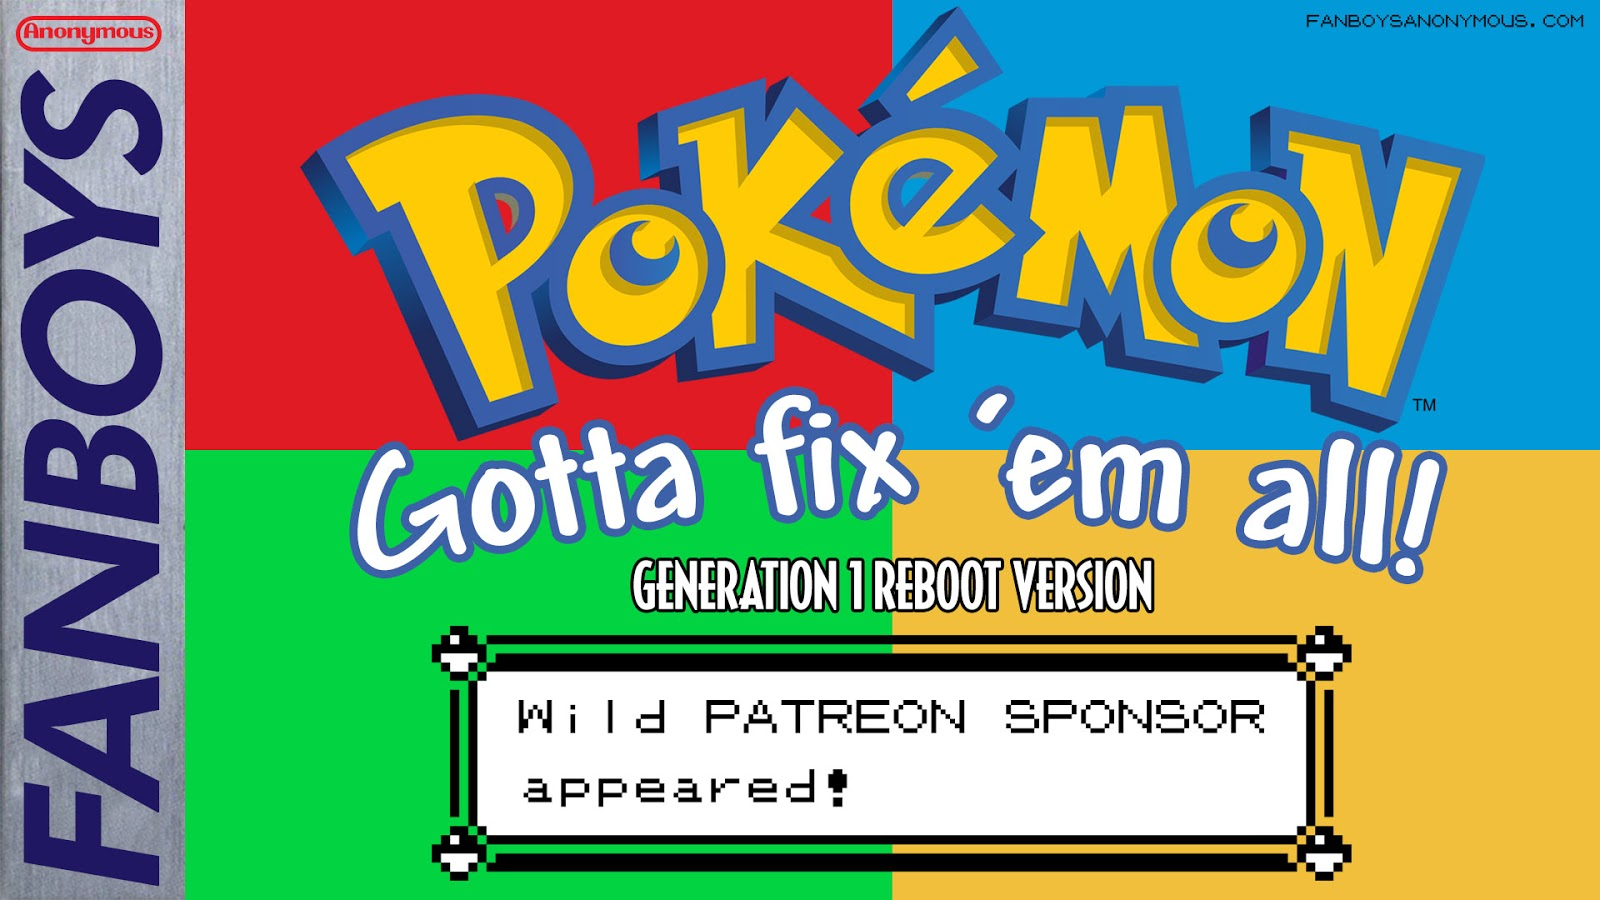 Fixing the problems of Pokemon Red Blue Yellow Green video games